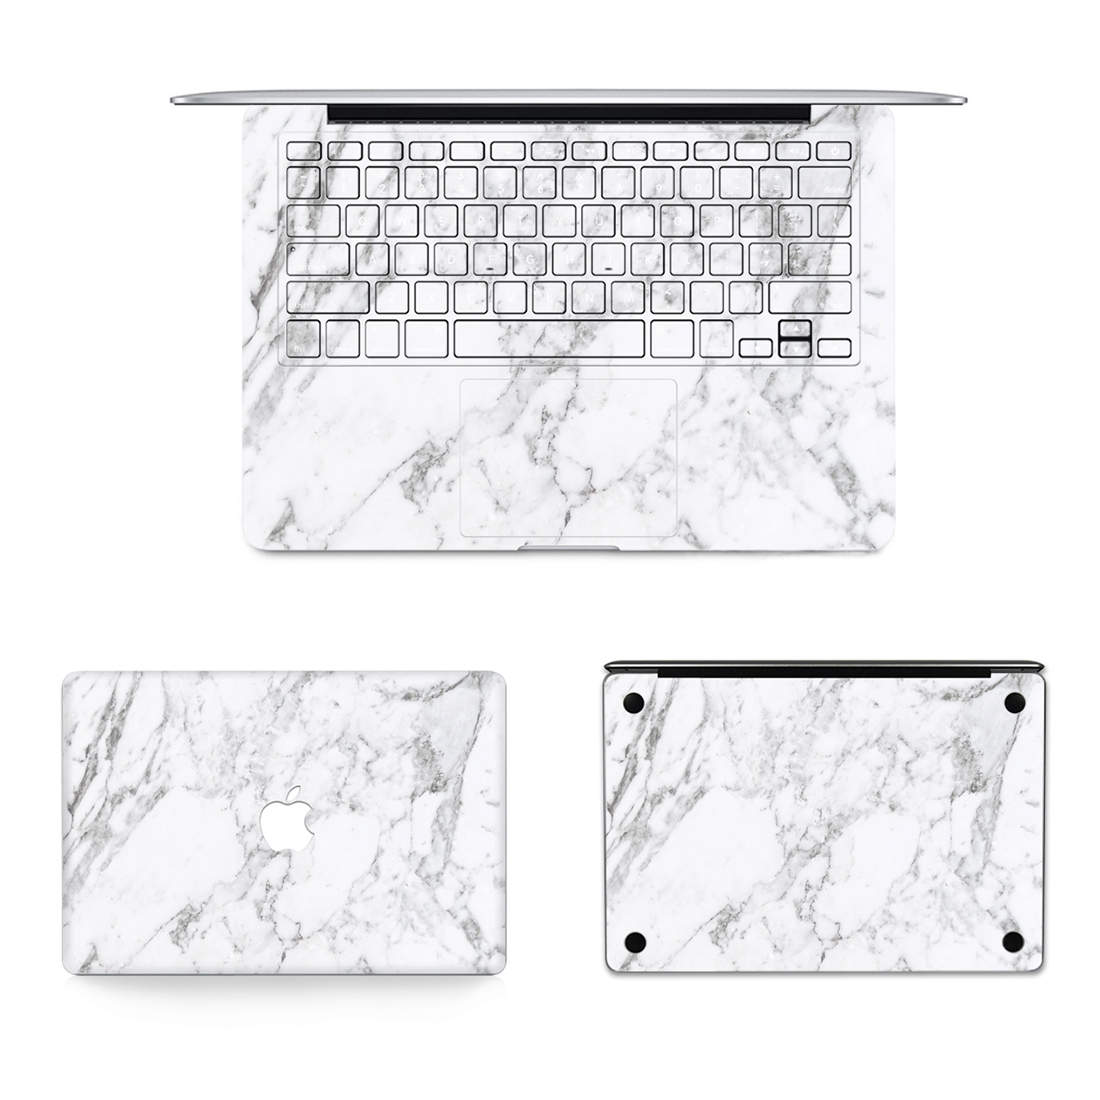 2013-2015 Full Top Protective Film // A1425 US Version Laptop Ski DNDETAO 3 in 1 MB-FB16 Bottom Film Set for MacBook Pro Retina 13.3 inch A1502 Full Keyboard Protector Film 2012-2013 114